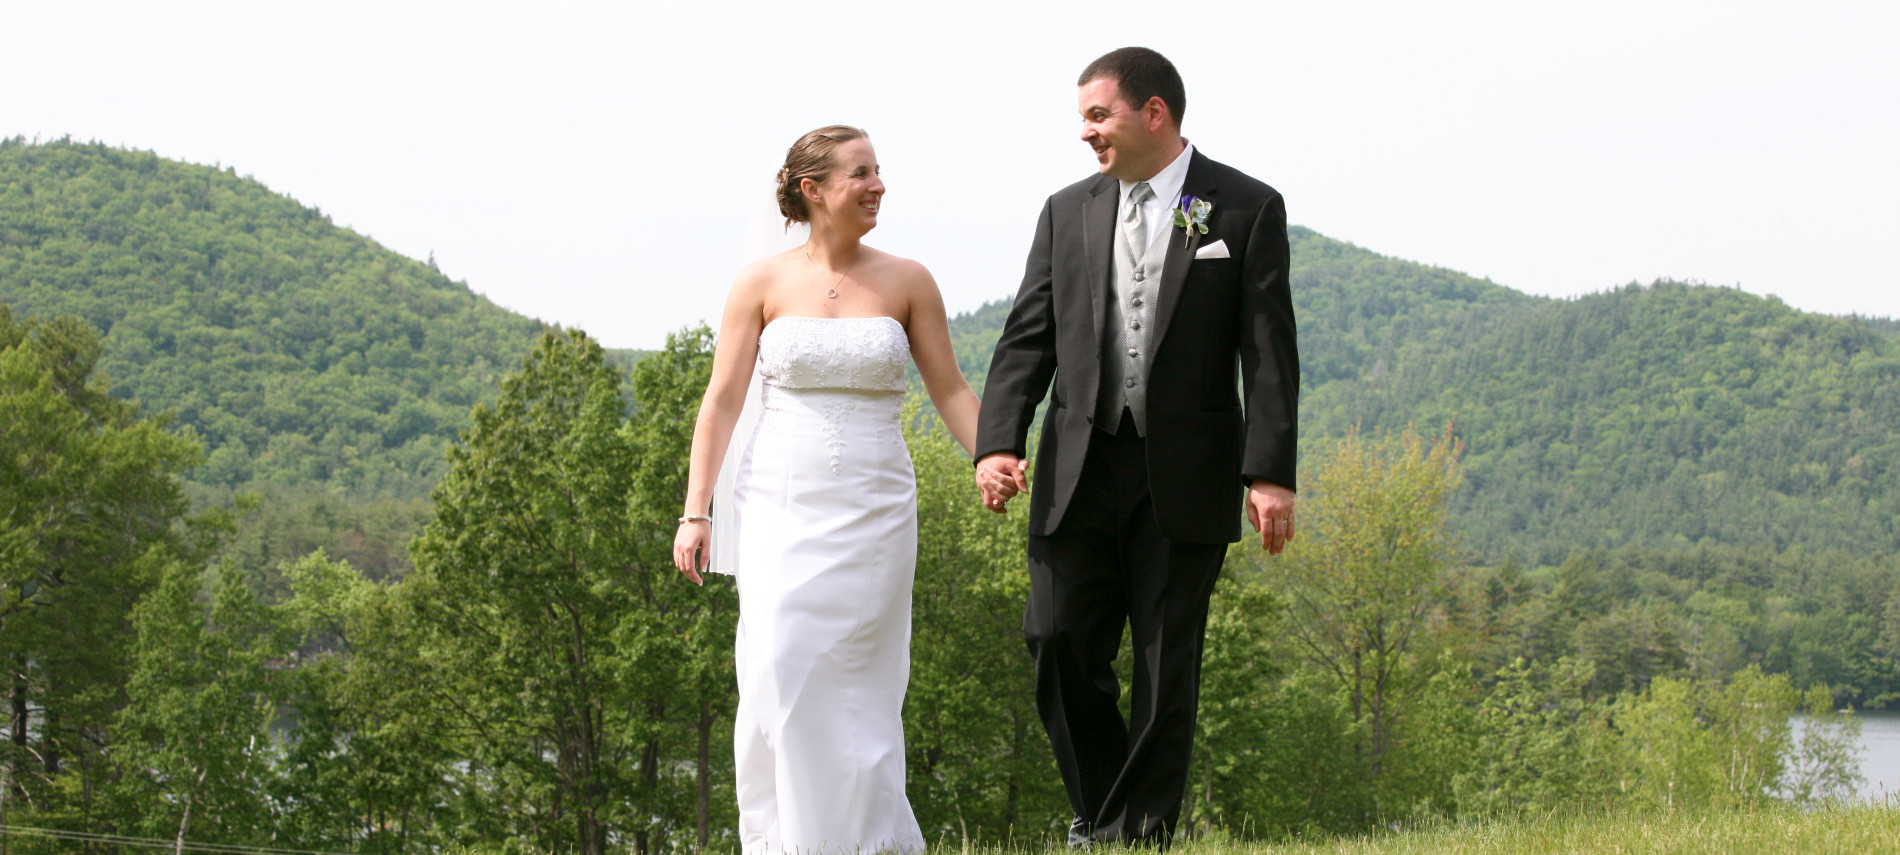 Intimate weddings, elopements, small weddings, NH Weddings at Manor On Golden Pond, Holderness, NH